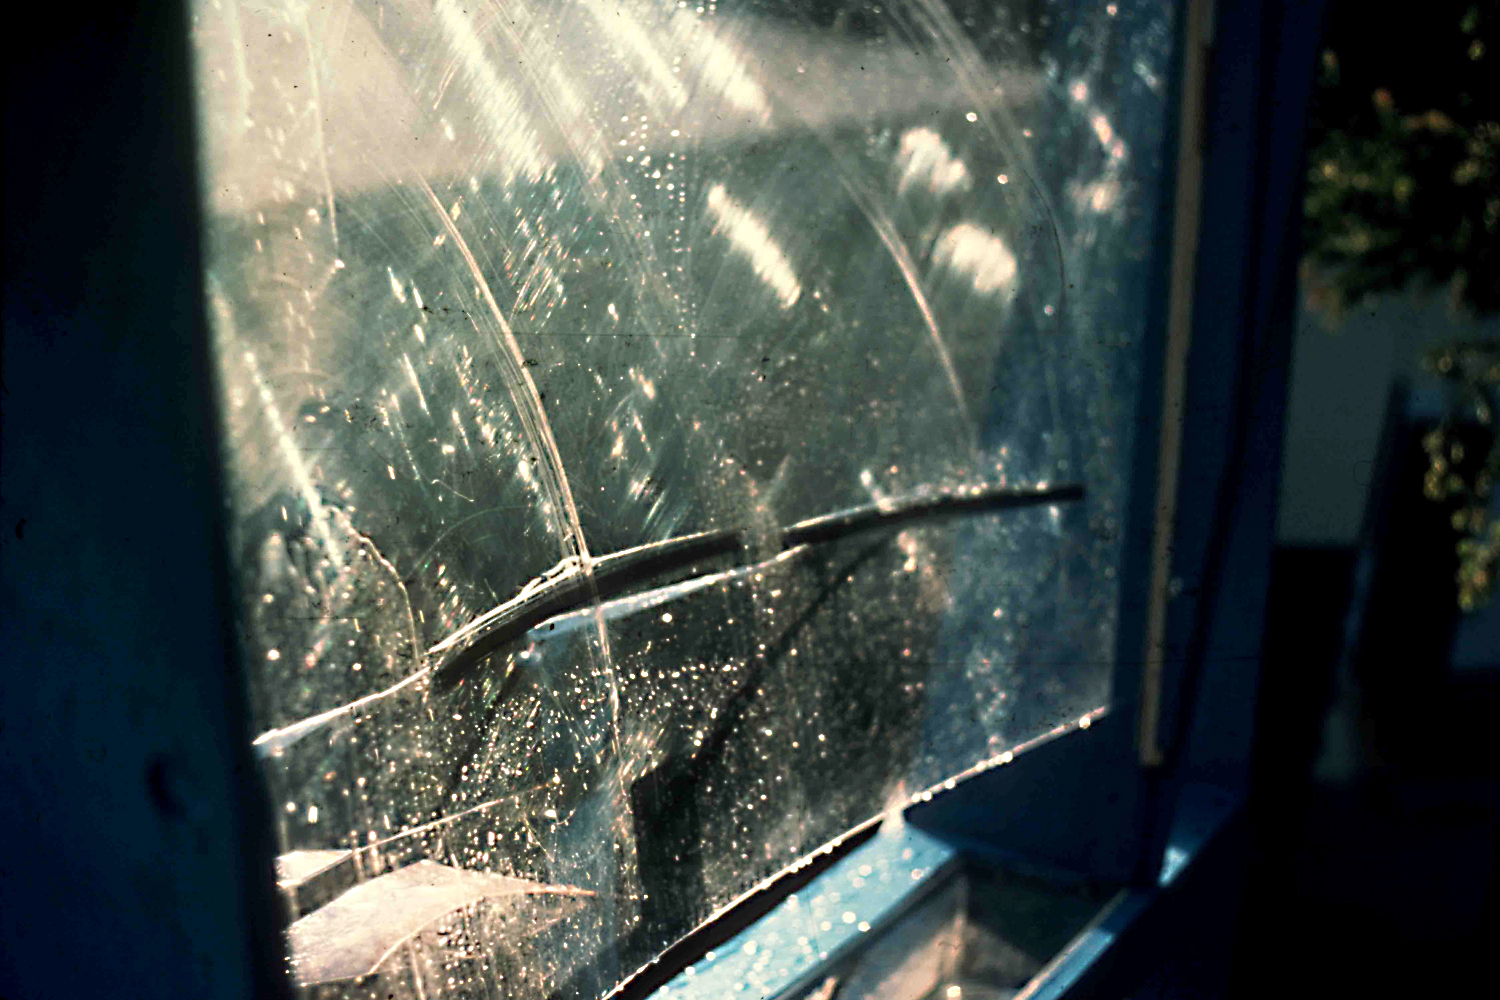 Untitled (Wipers)